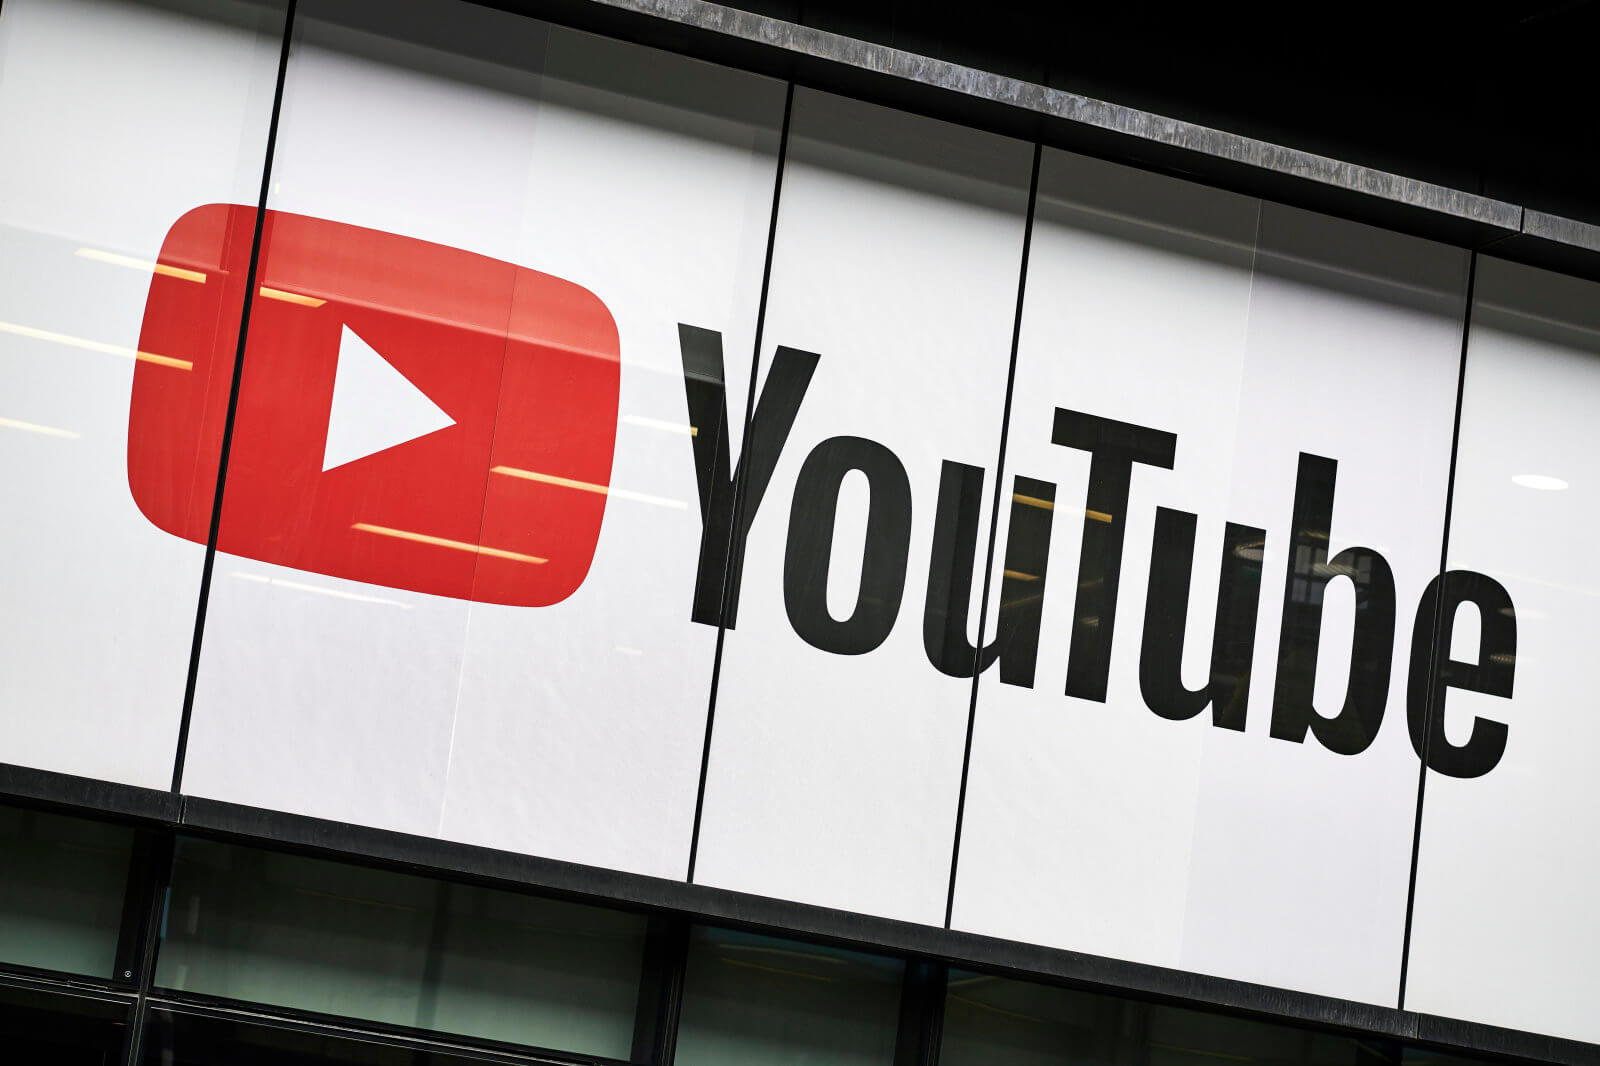 YouTube CEO issues public apology for verification changes